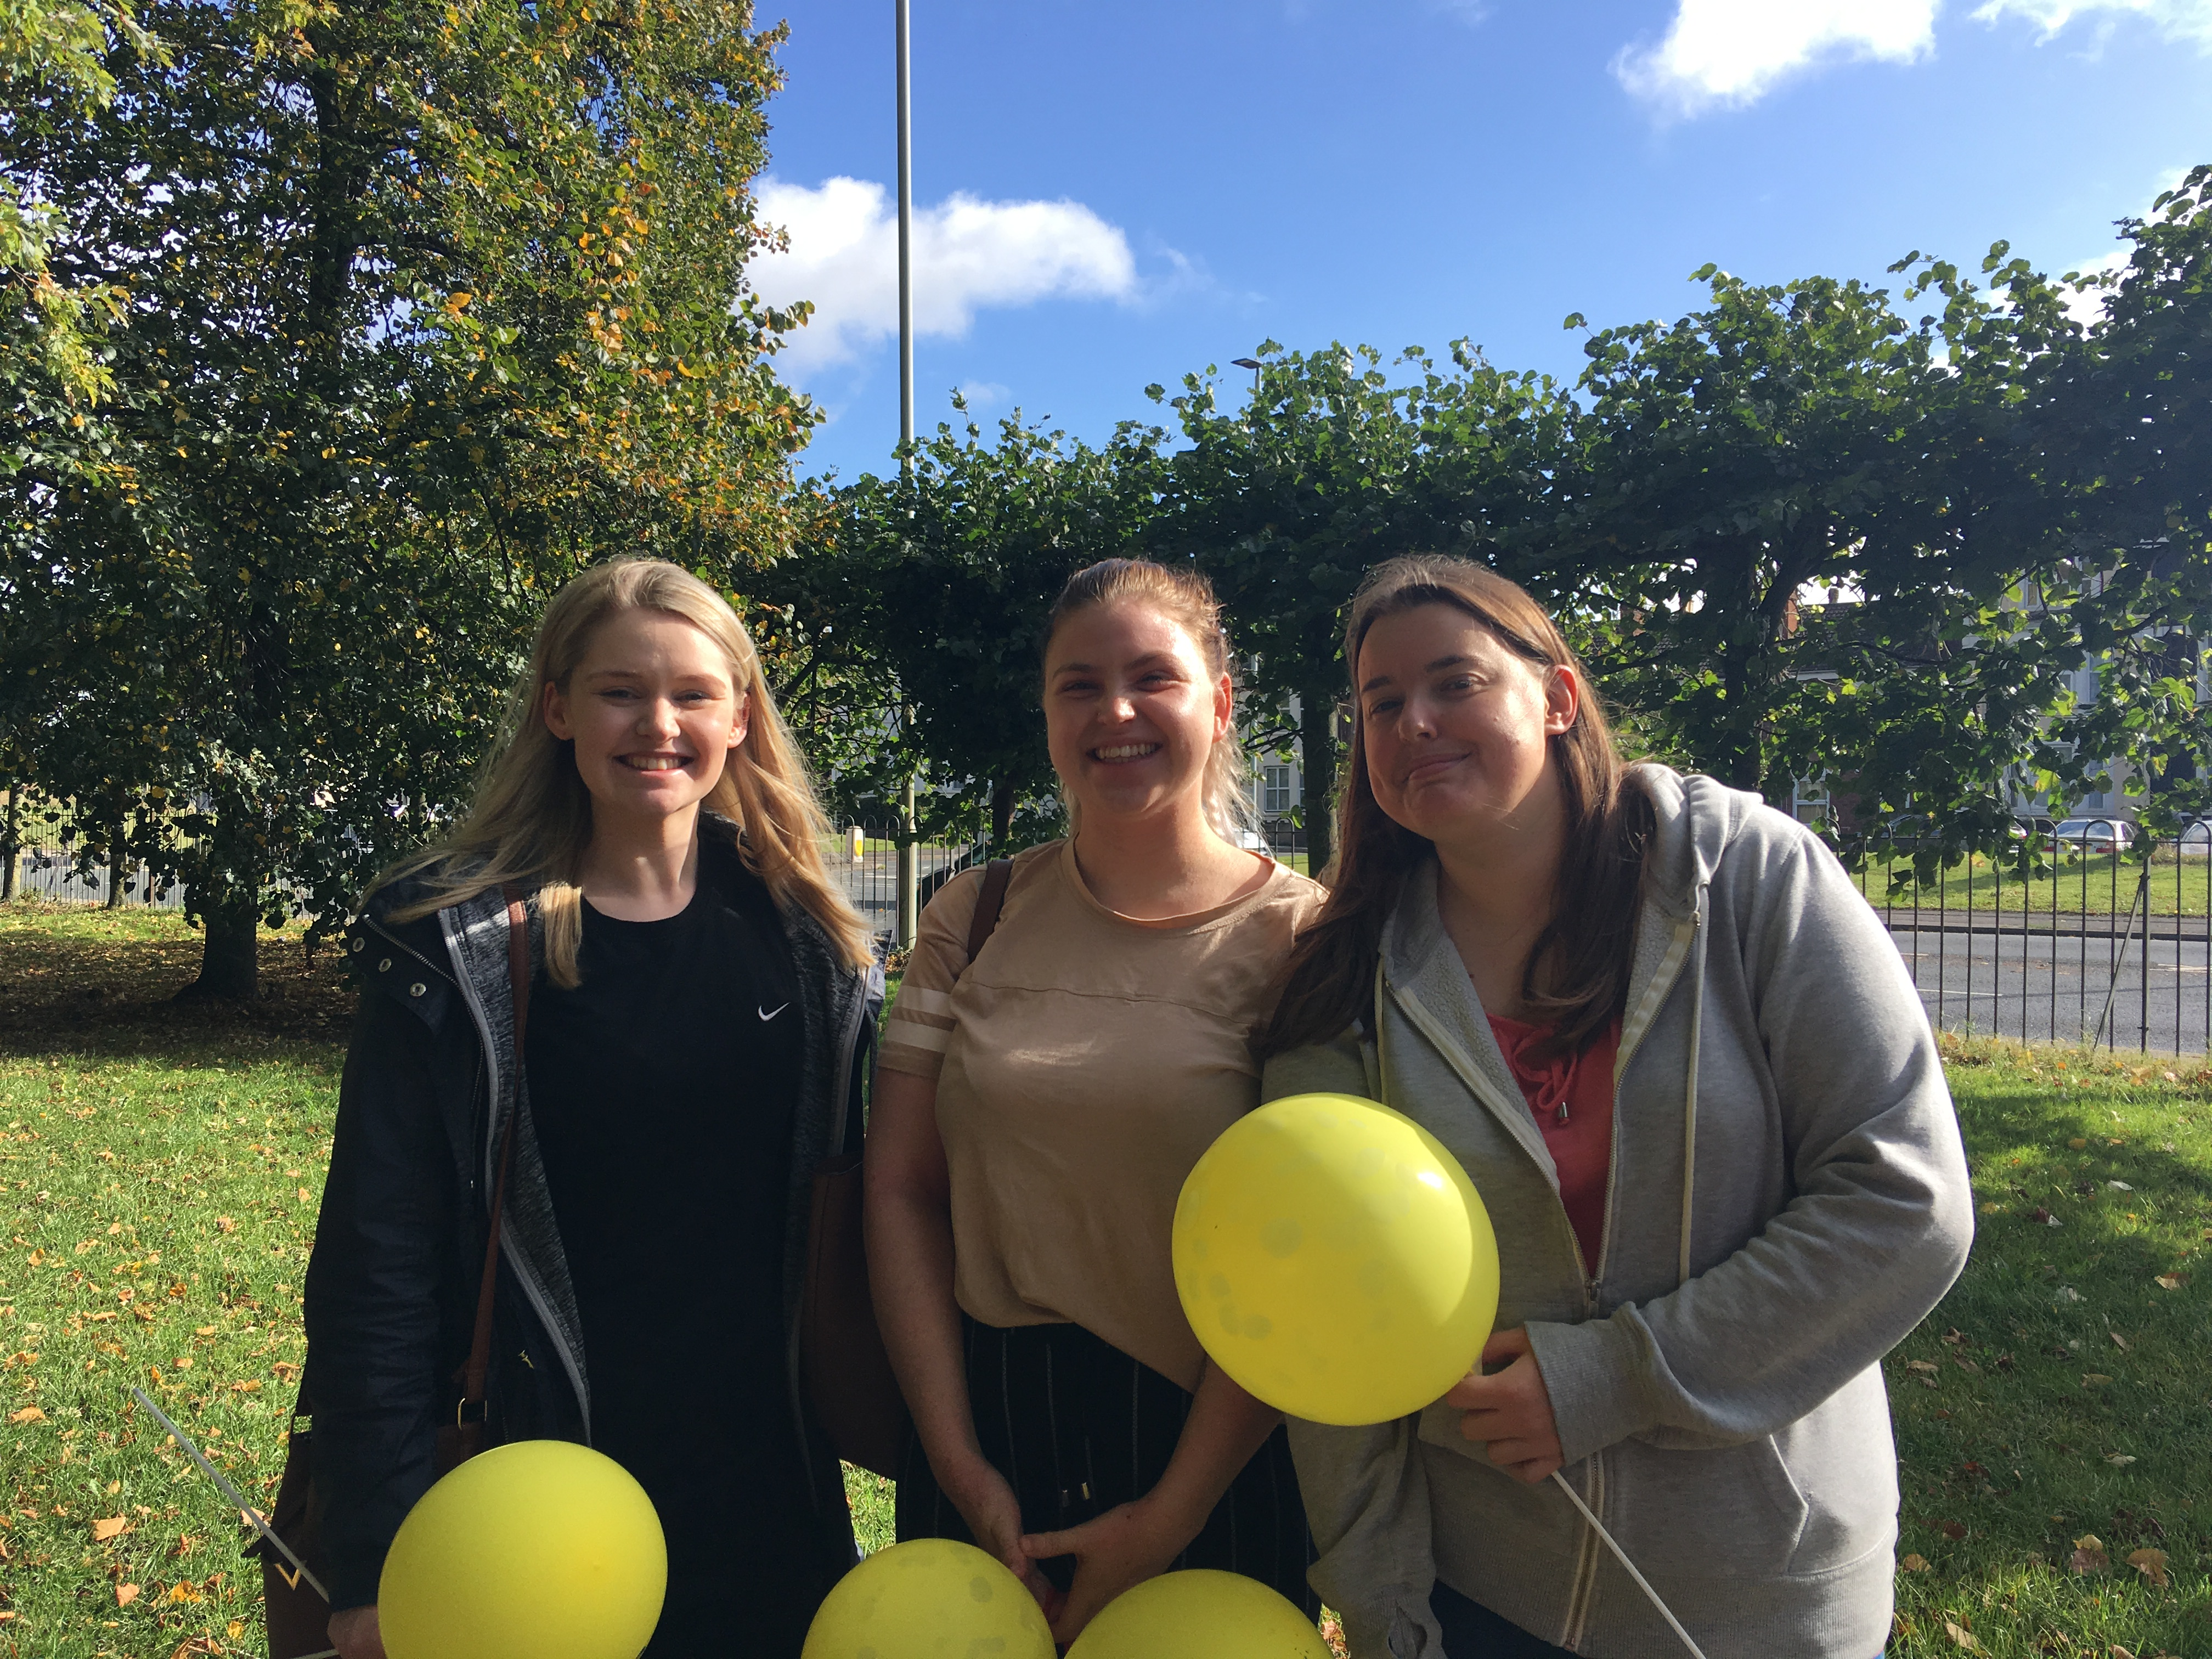 Gloucester nursery embraced the fresh air and enjoyed a lovely walk raising awareness and funds for Winstons Wish.